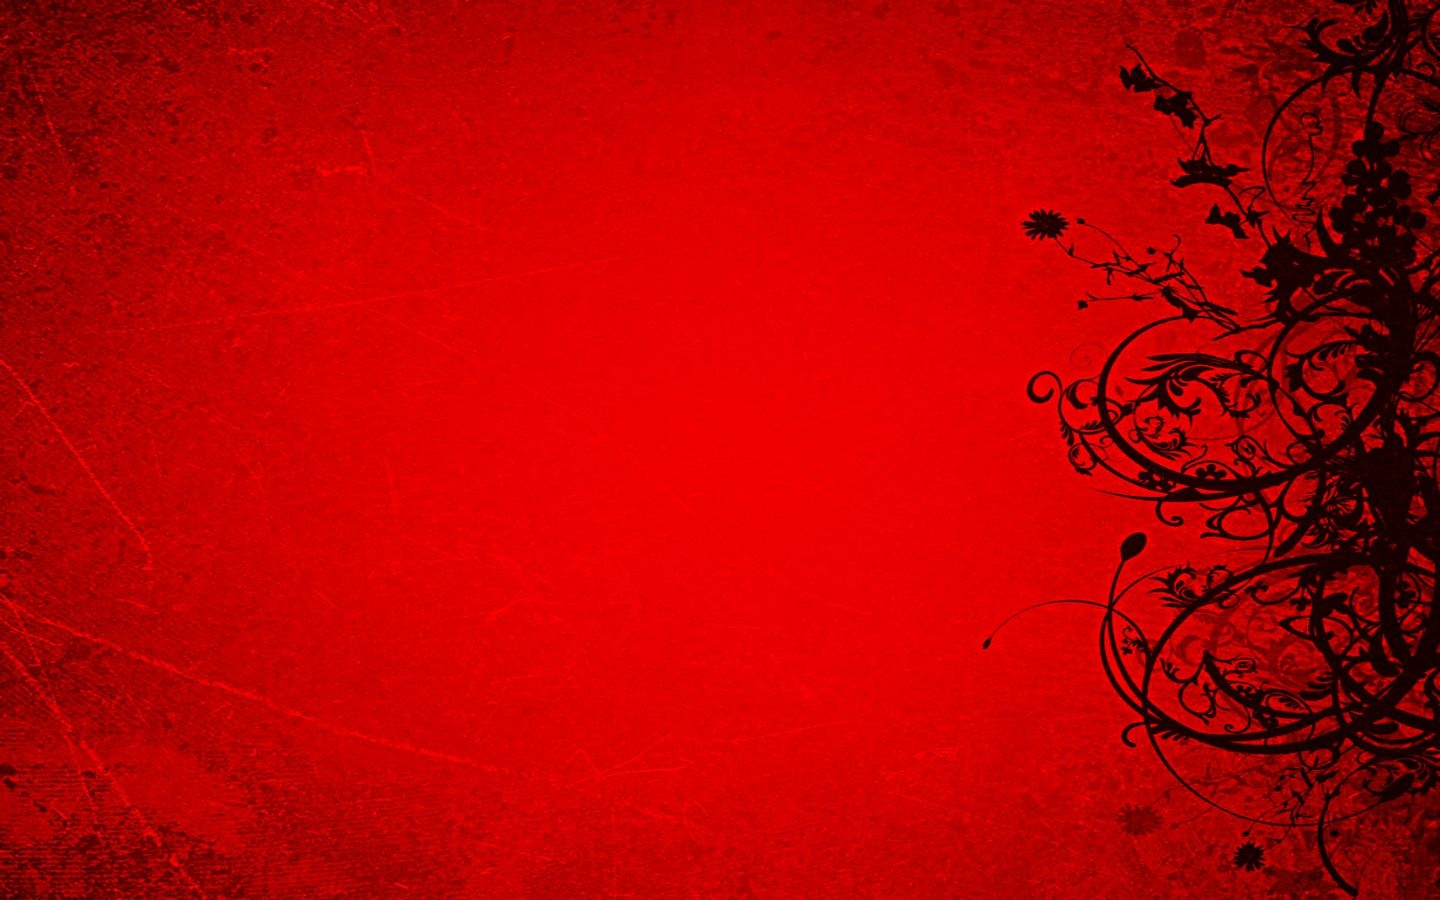 Maroon Background Wallpaper   Red Backgrounds For Powerpoint ...